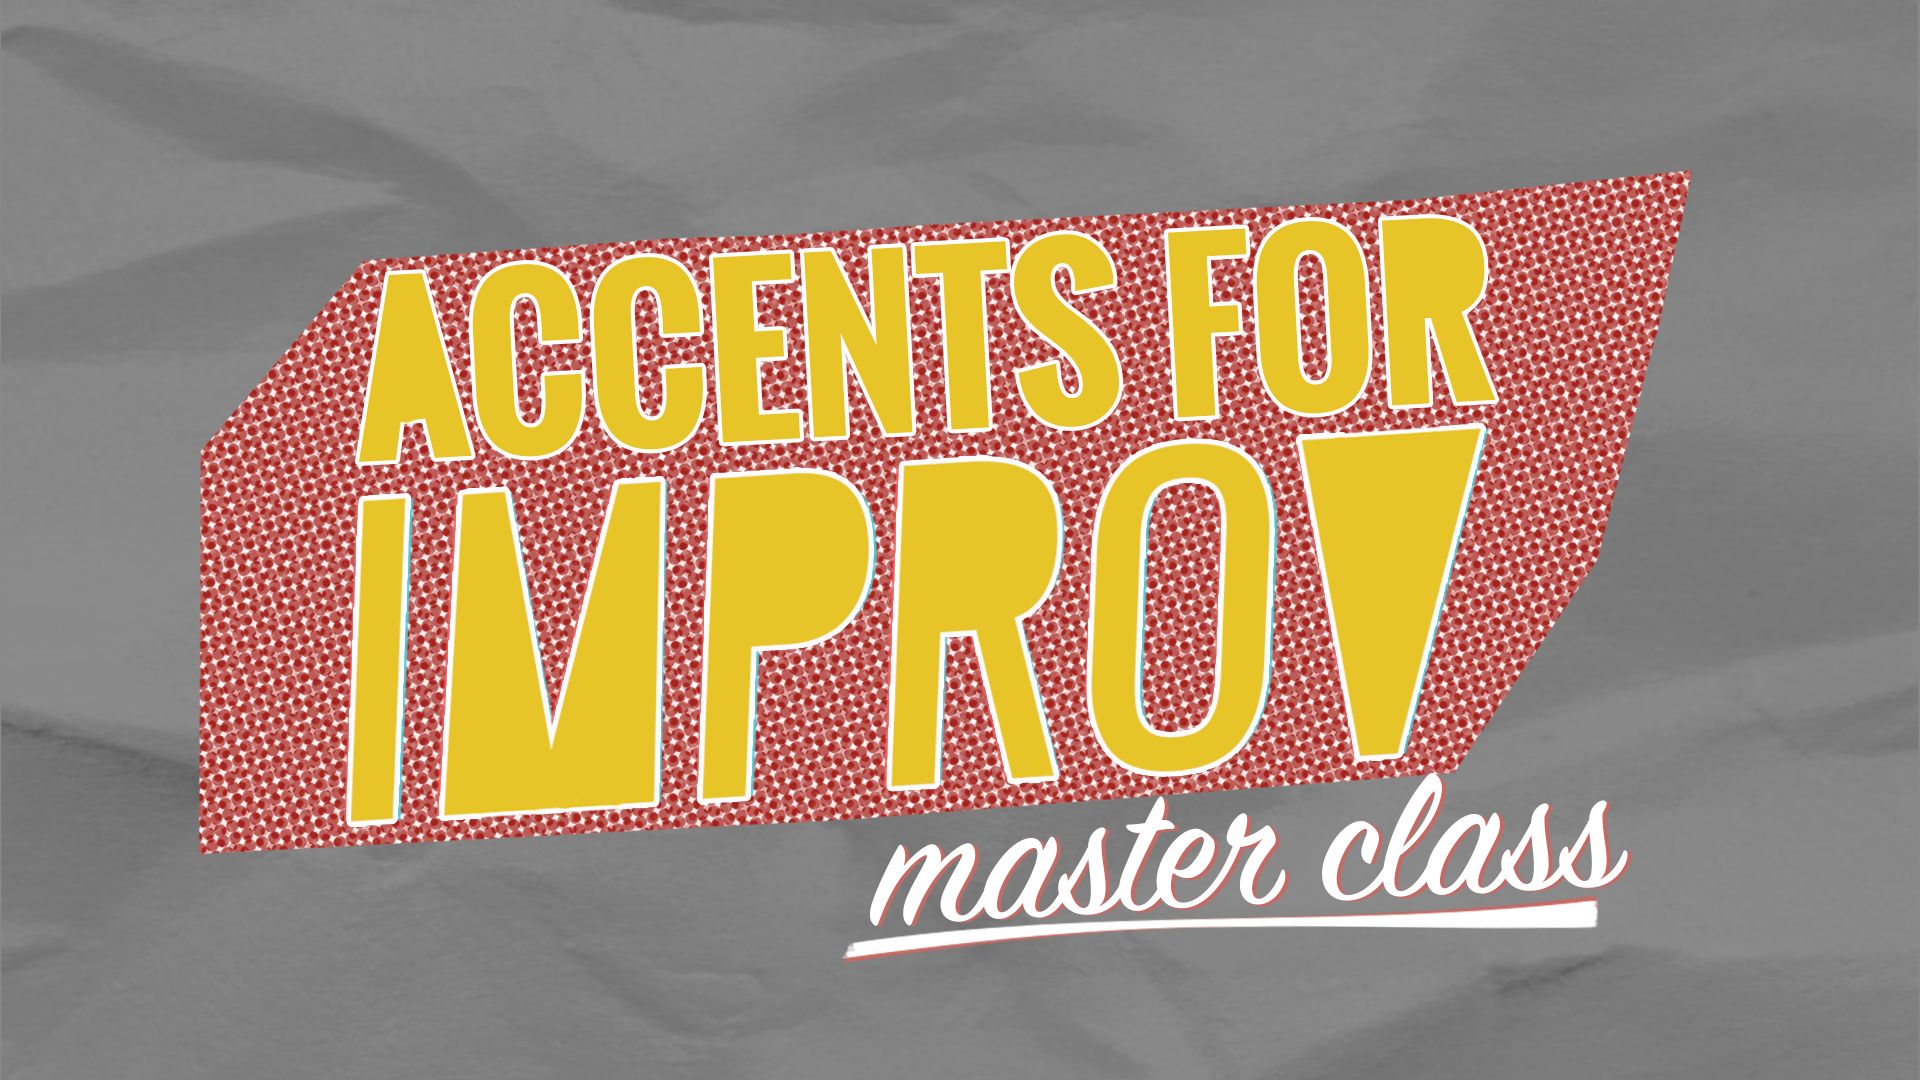 ACCENTS FOR IMPROV MASTER CLASS - Join Jordan Yanco, Dialect Coach for Improv, Stand-up, and beyond, for this 4-week exploration of accents for Improv and performance.